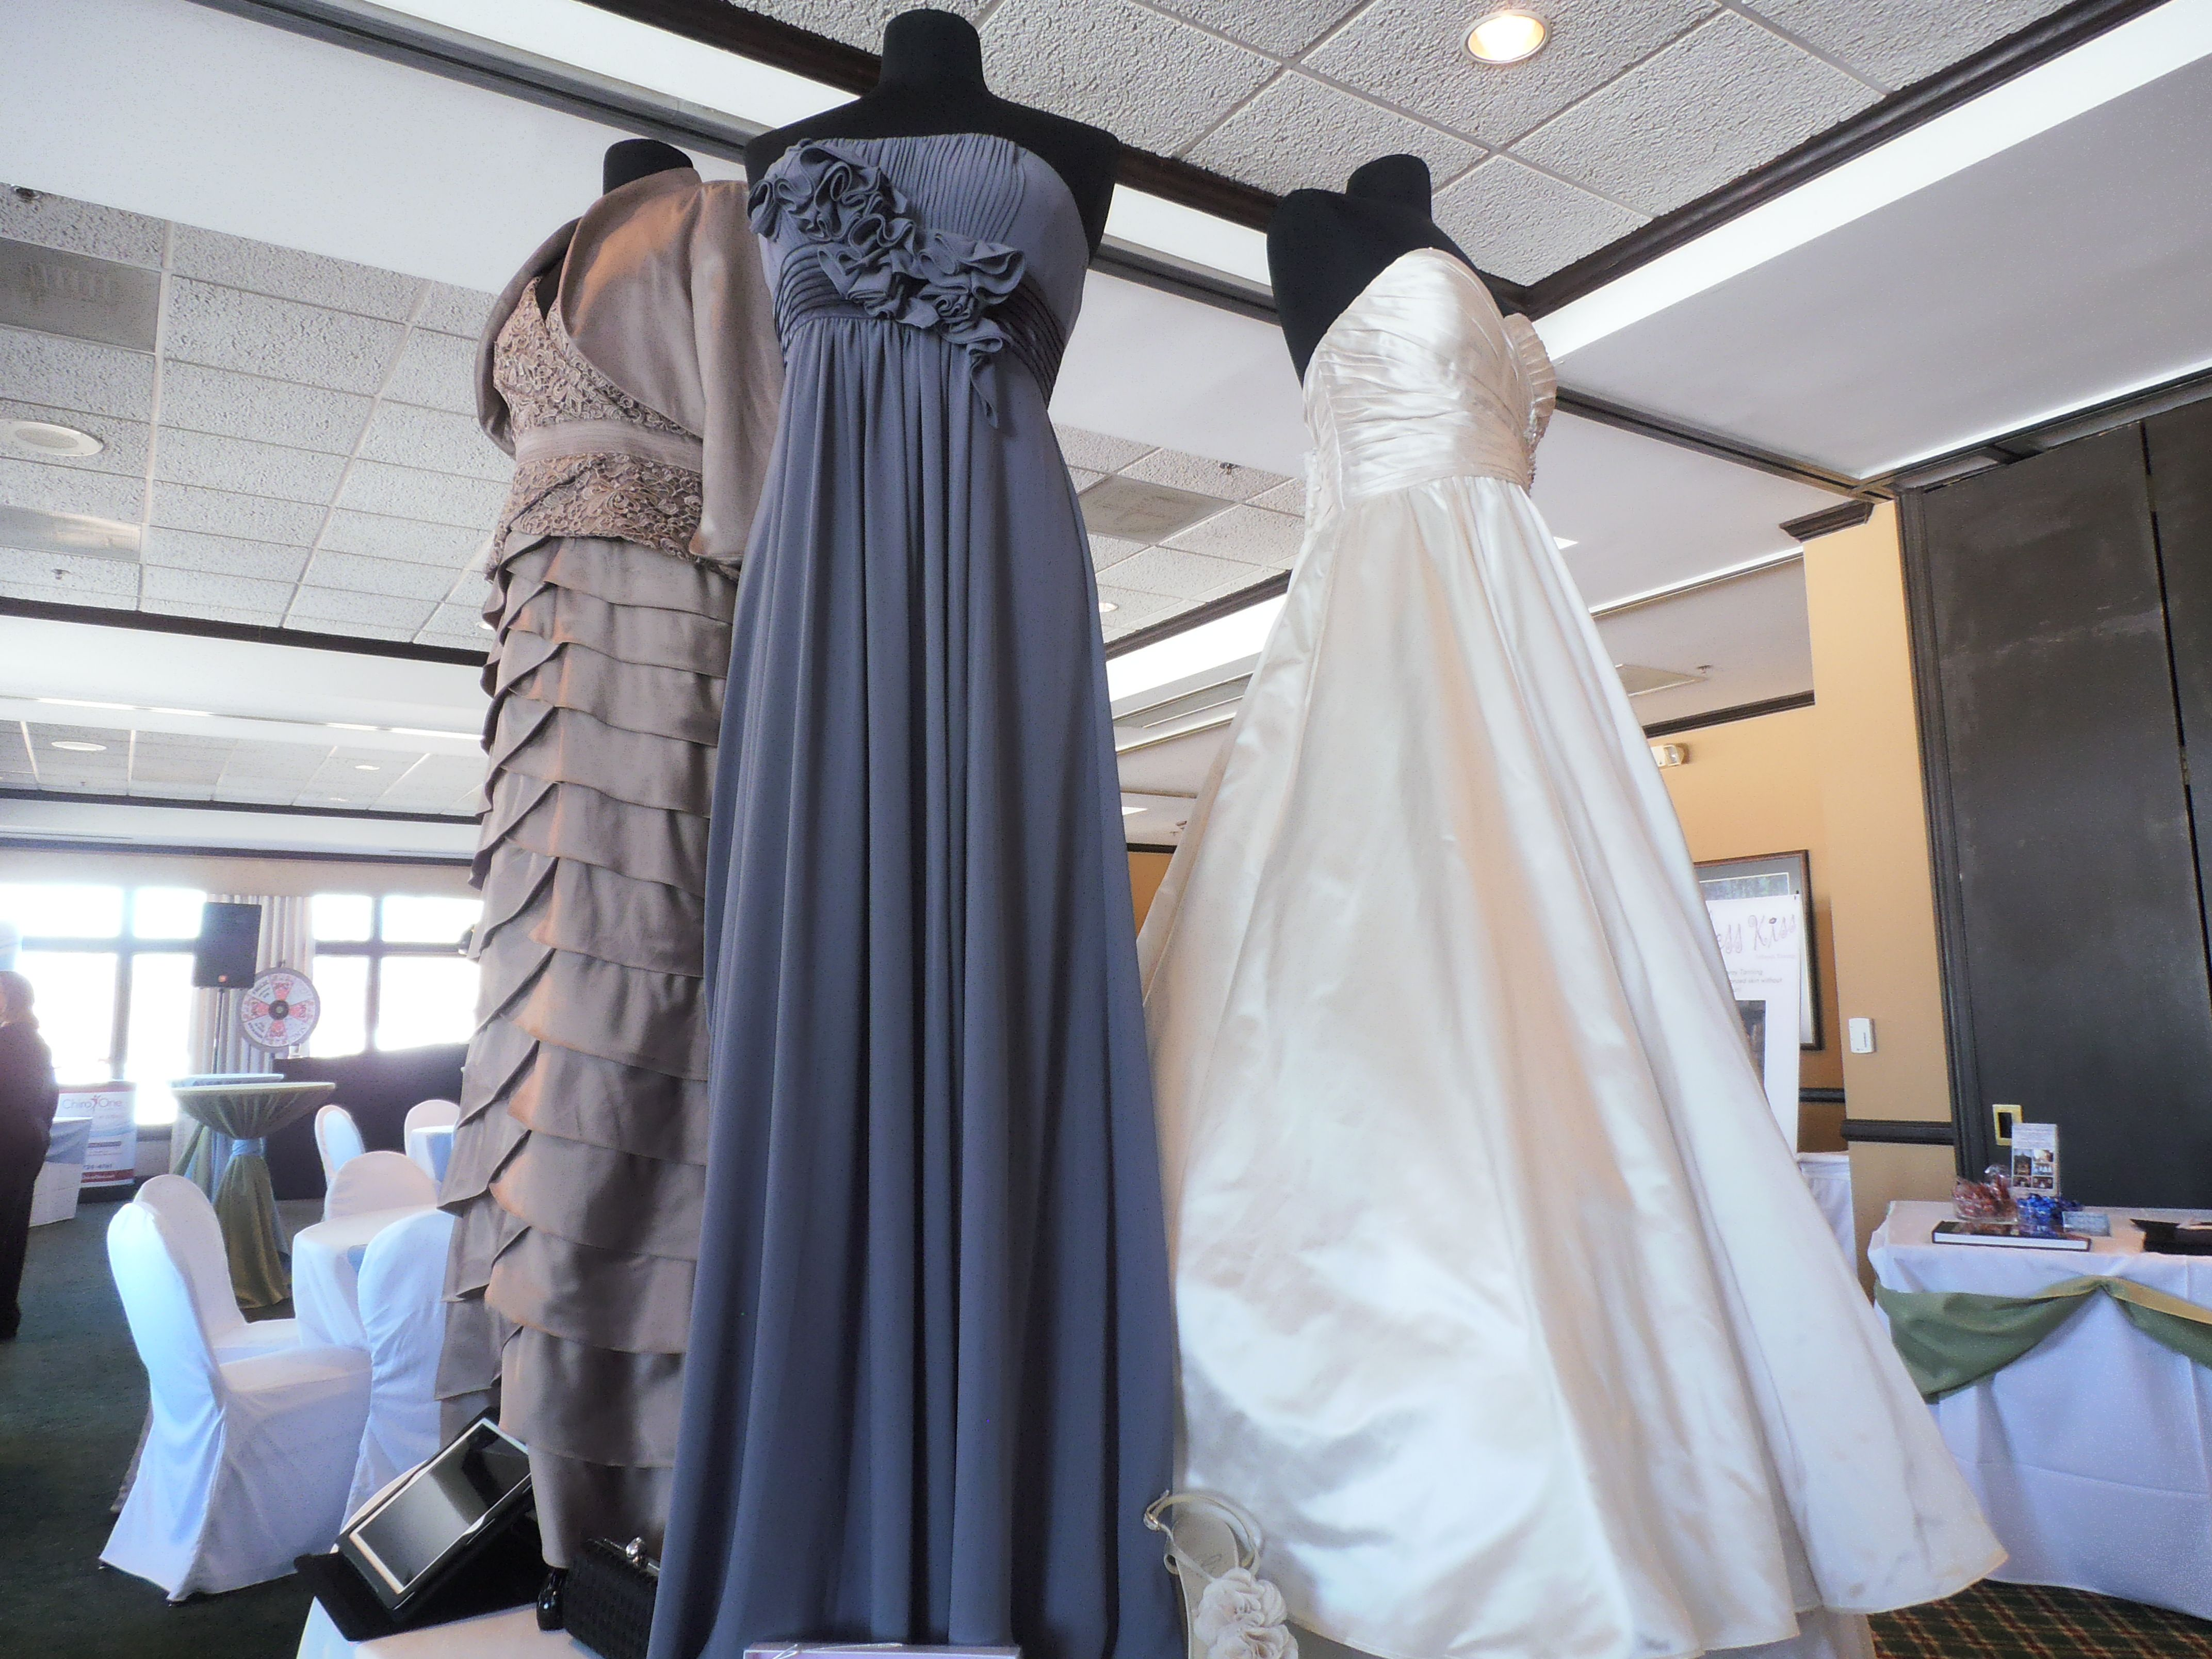 Bridal show gowns and tuxedo samples were provided by bella bridal